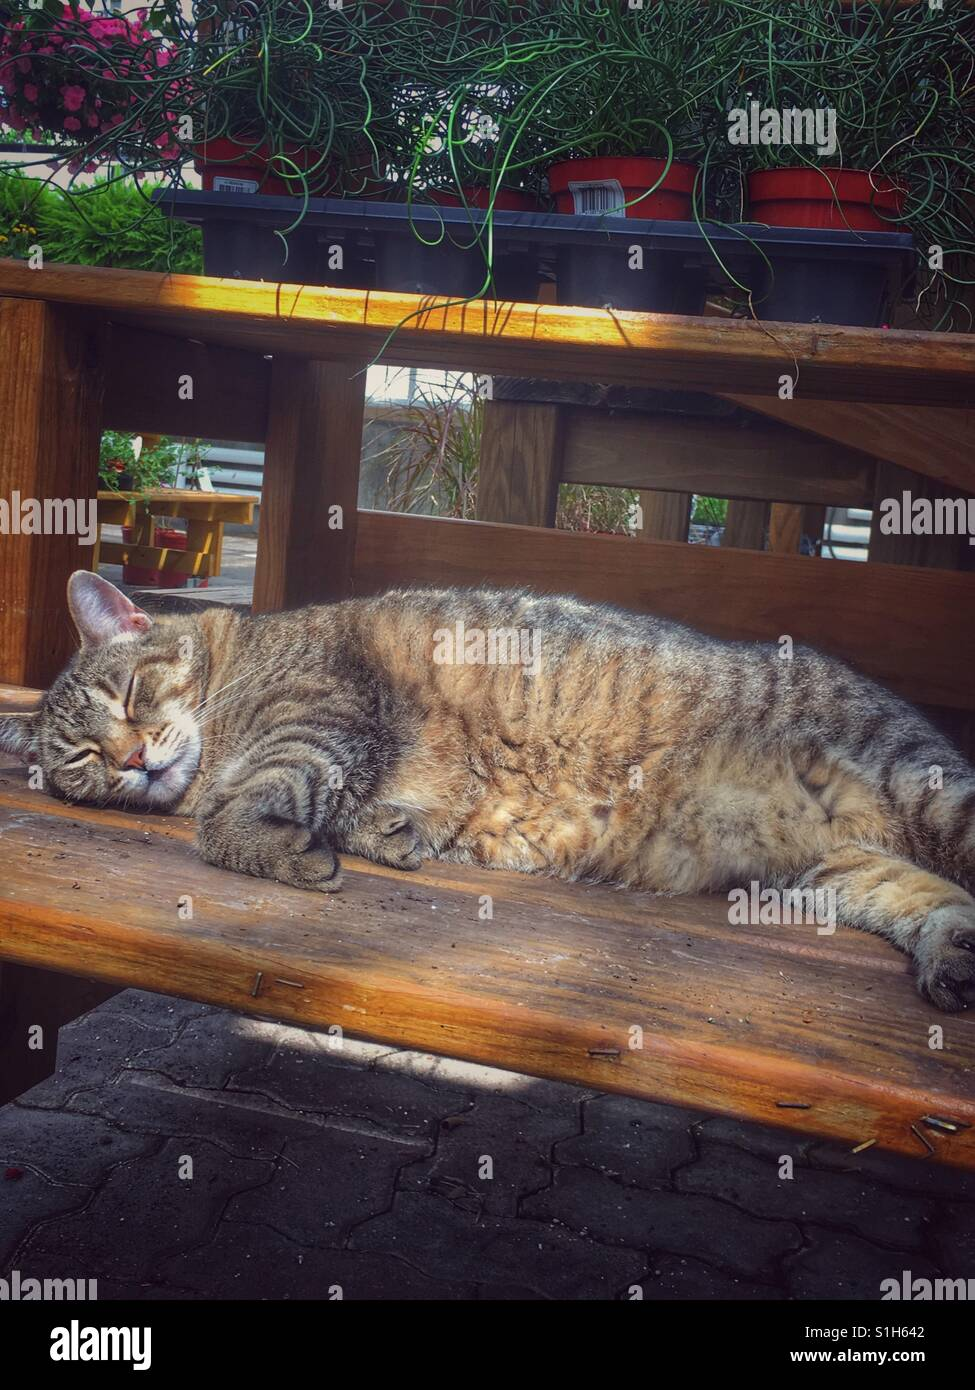 A tabby cat snoozes in the rays of the sun. The cat lives in a garden store and is lying on a shelf underneath merchandise. - Stock Image